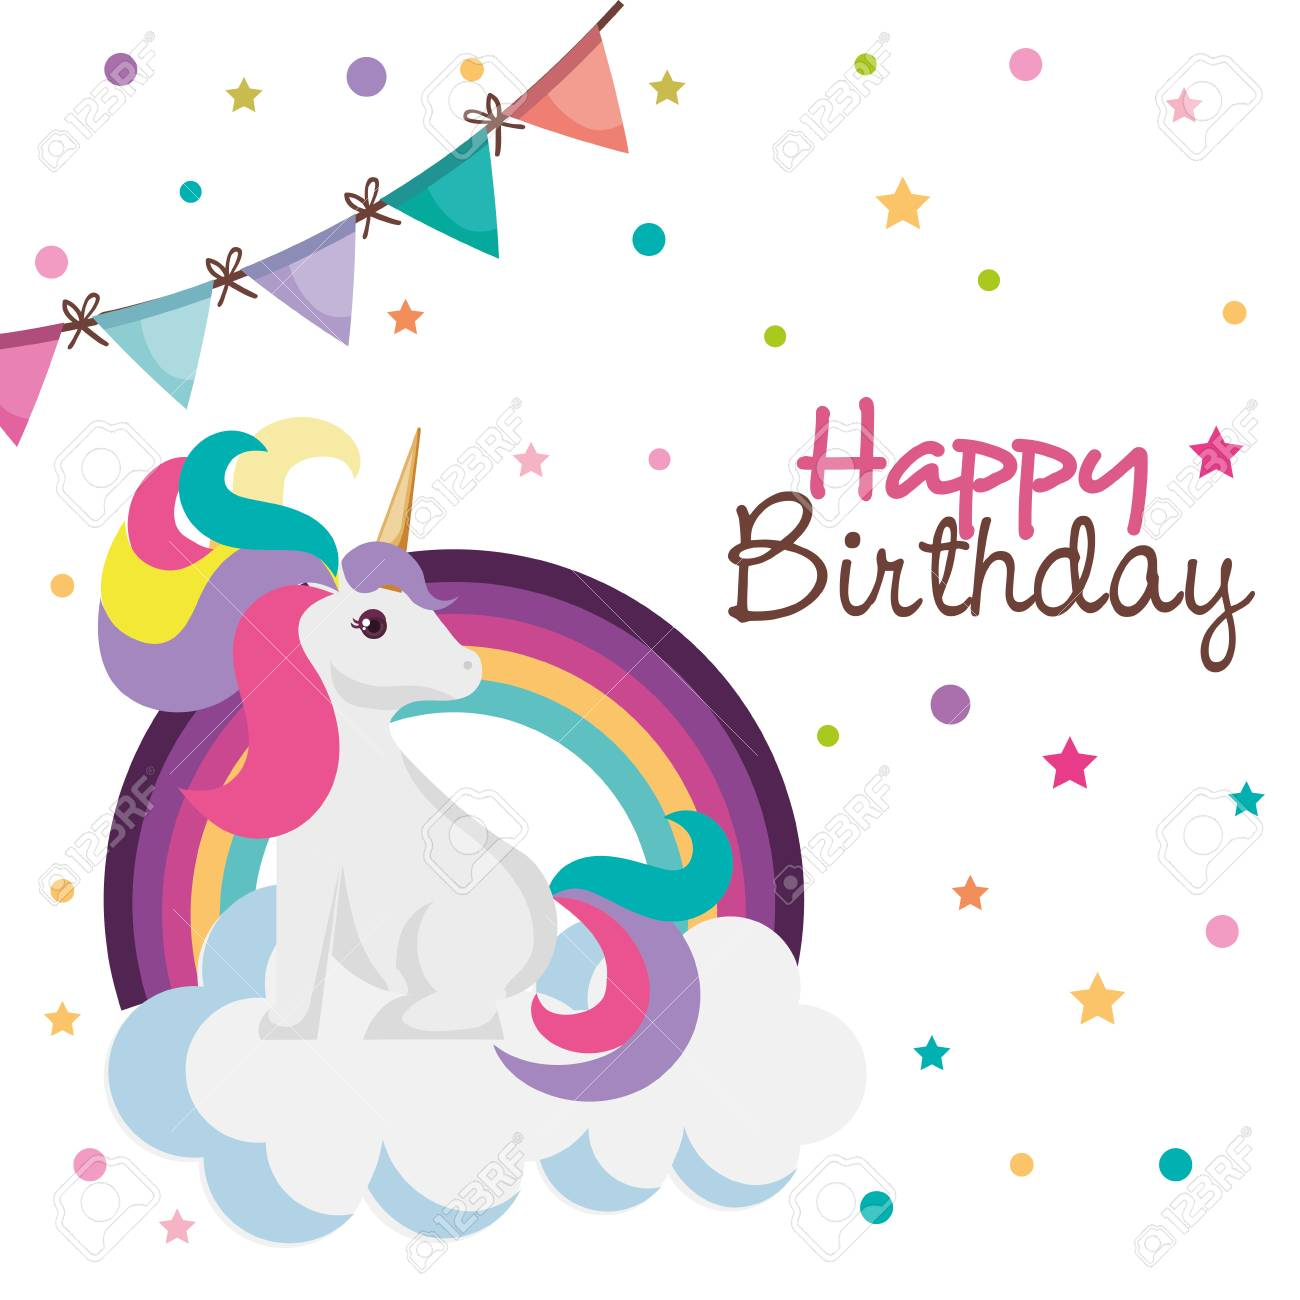 Happy Birthday Card With Unicorn Character Vector Illustration Design Stock